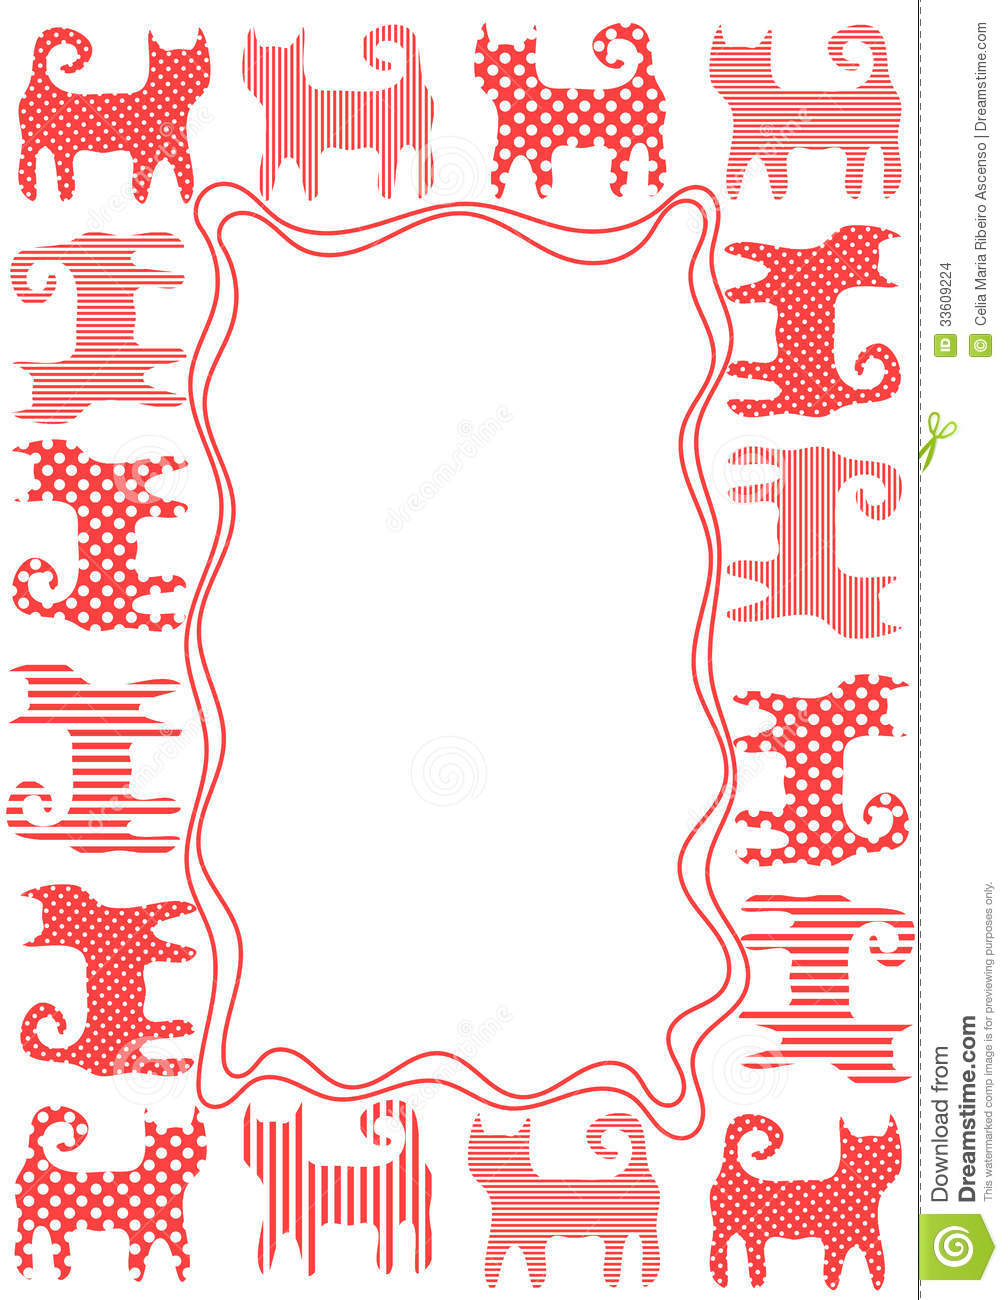 Patterned Cats Border Frame Stock Images - Image: 33609224